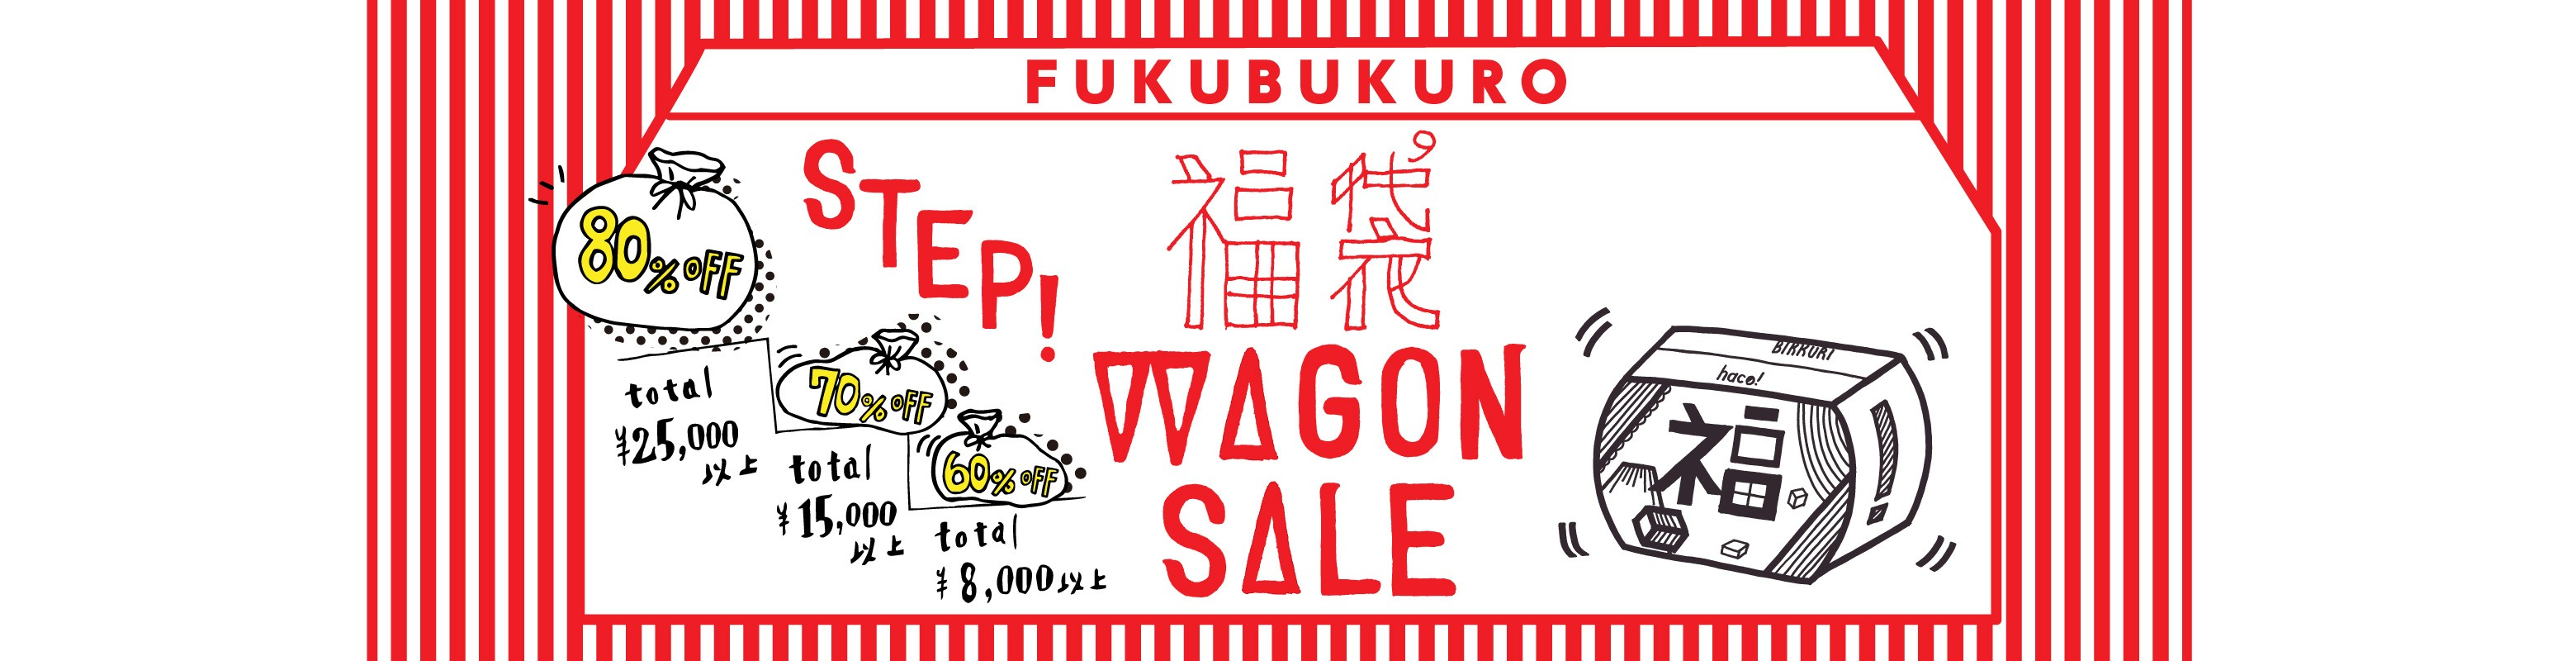 【 福袋 】STEP! WAGON SALE